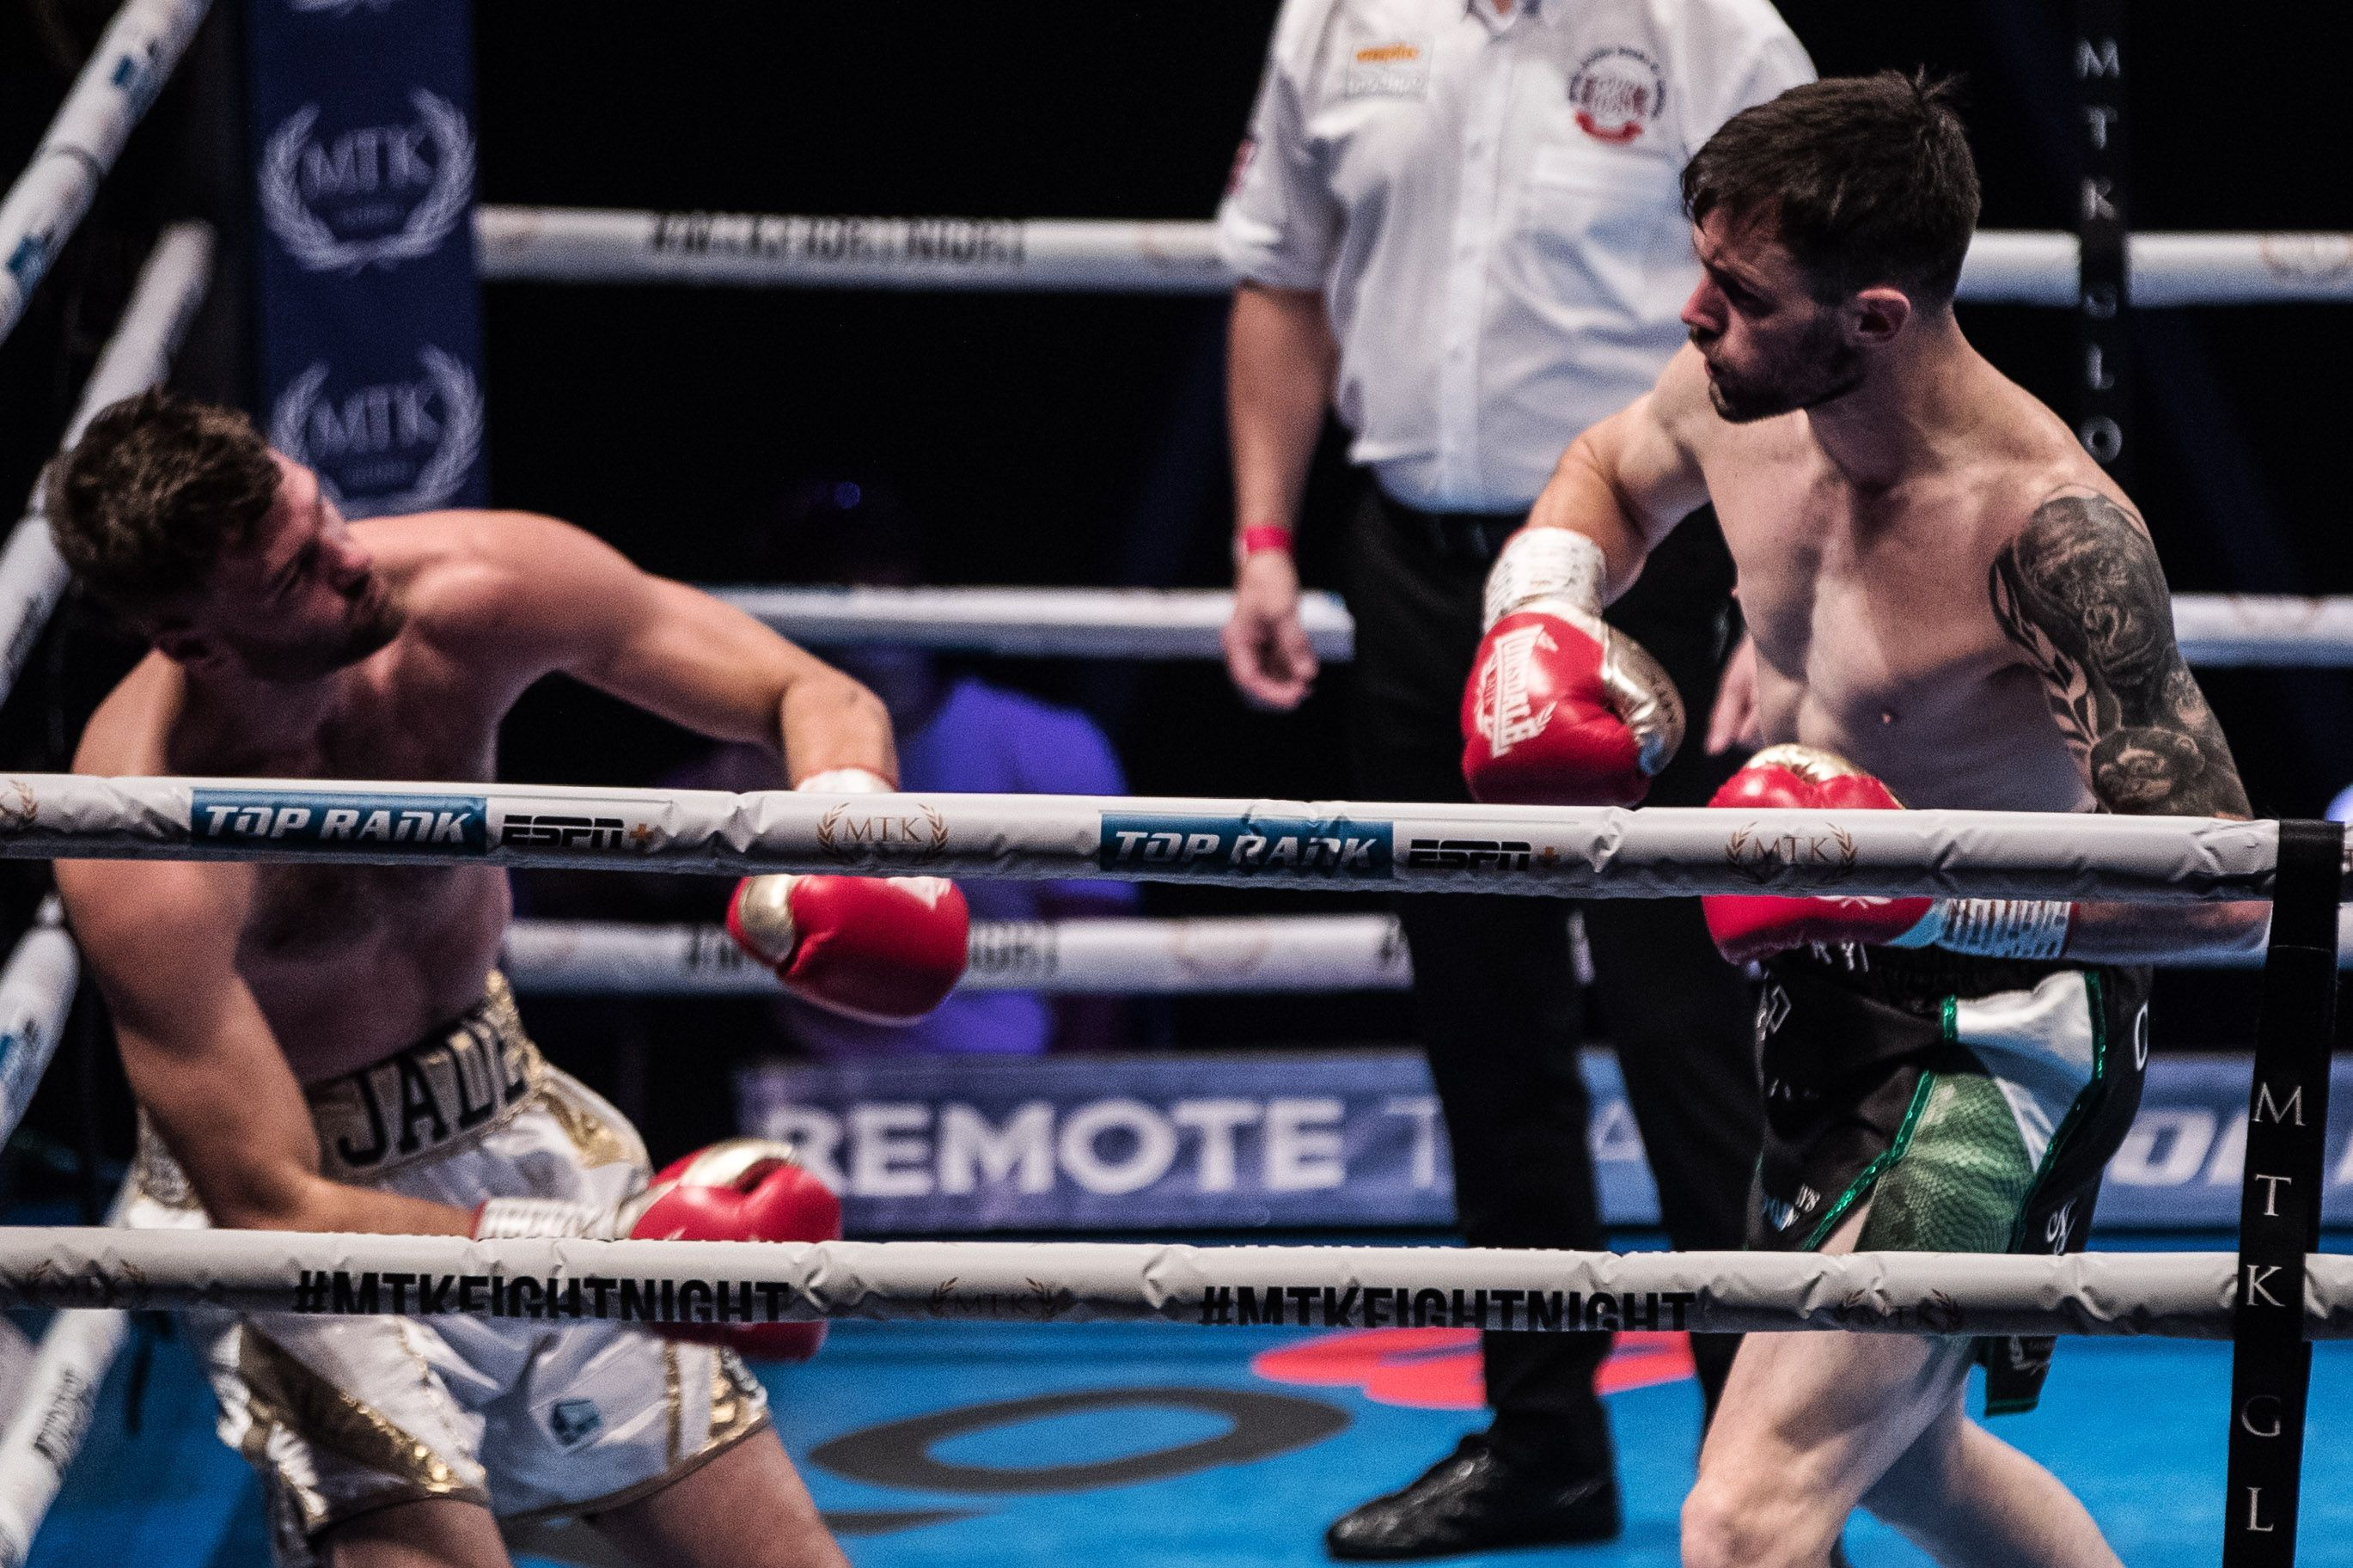 Padraig McCrory had been going to build on his impressive victory over Mickey Ellison in September